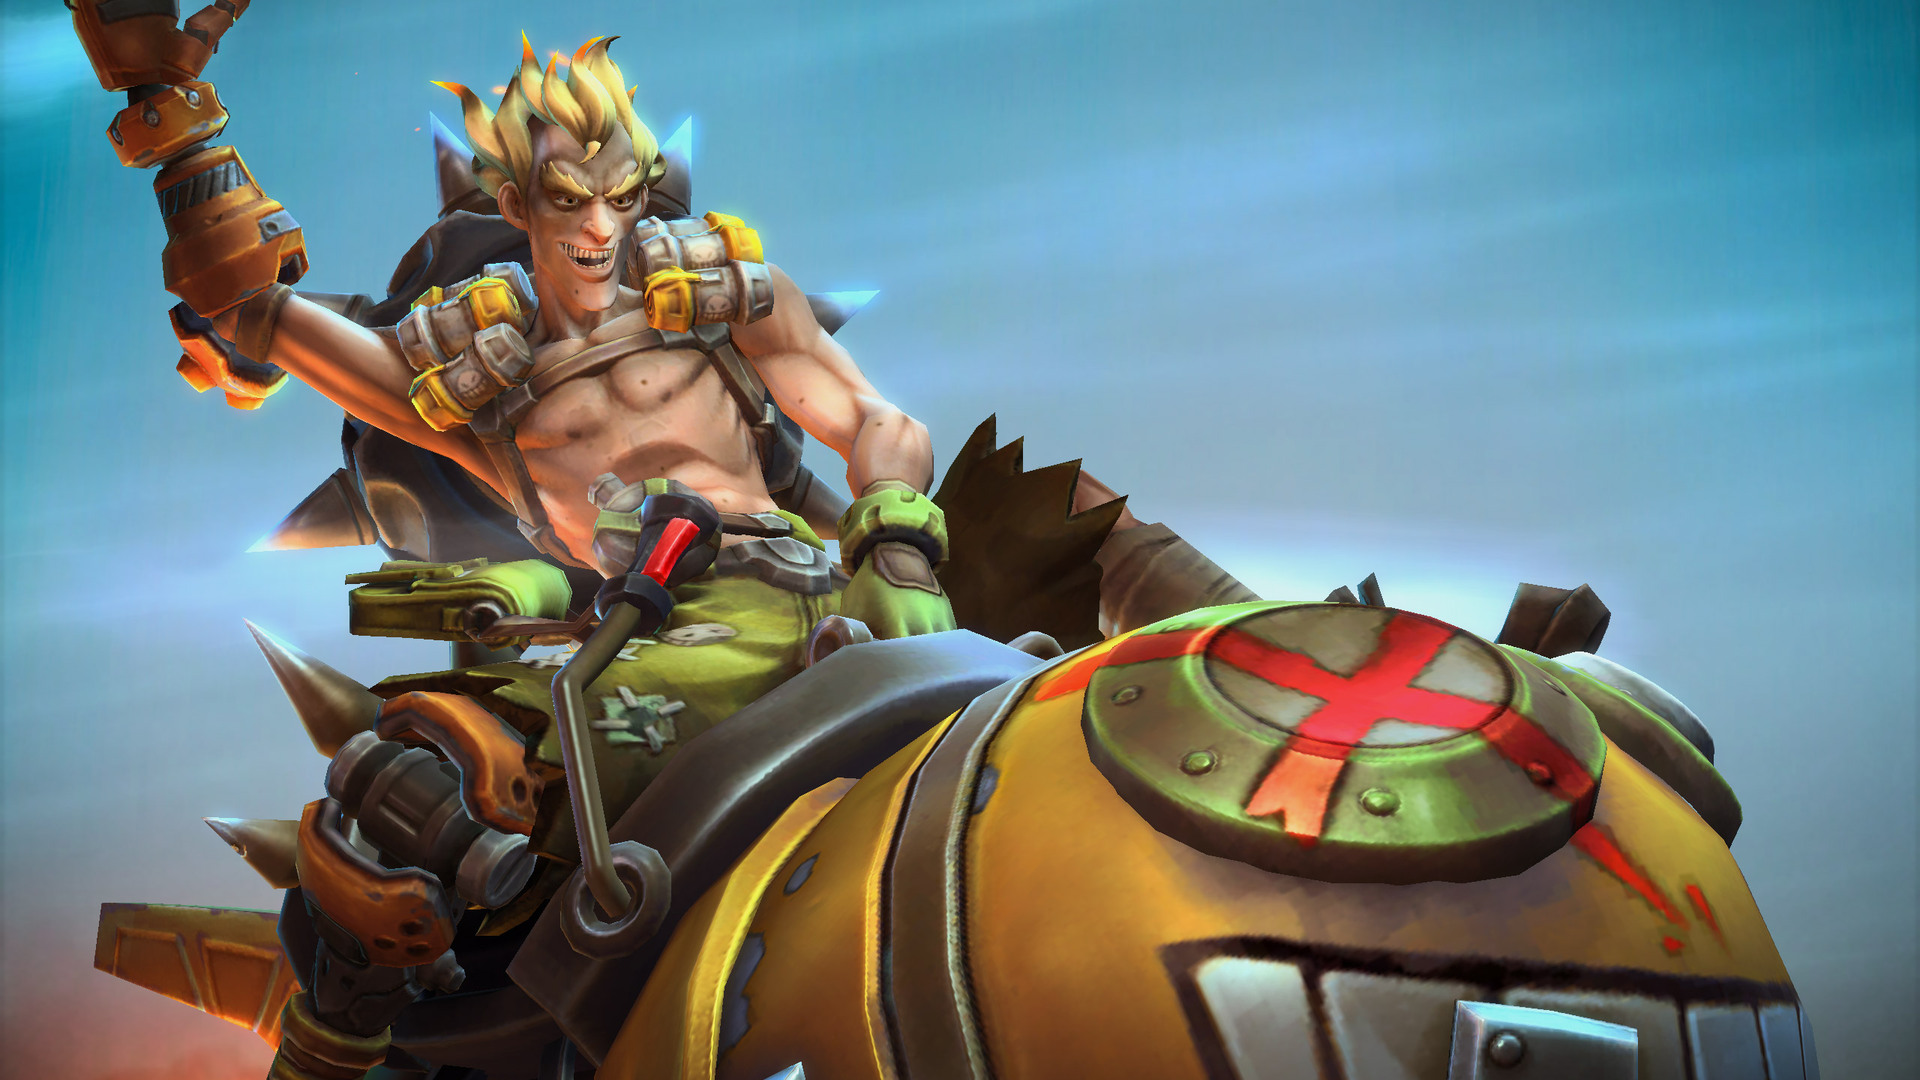 1920x1080 Junkrat Heroes Of The Storm Laptop Full Hd 1080p Hd 4k